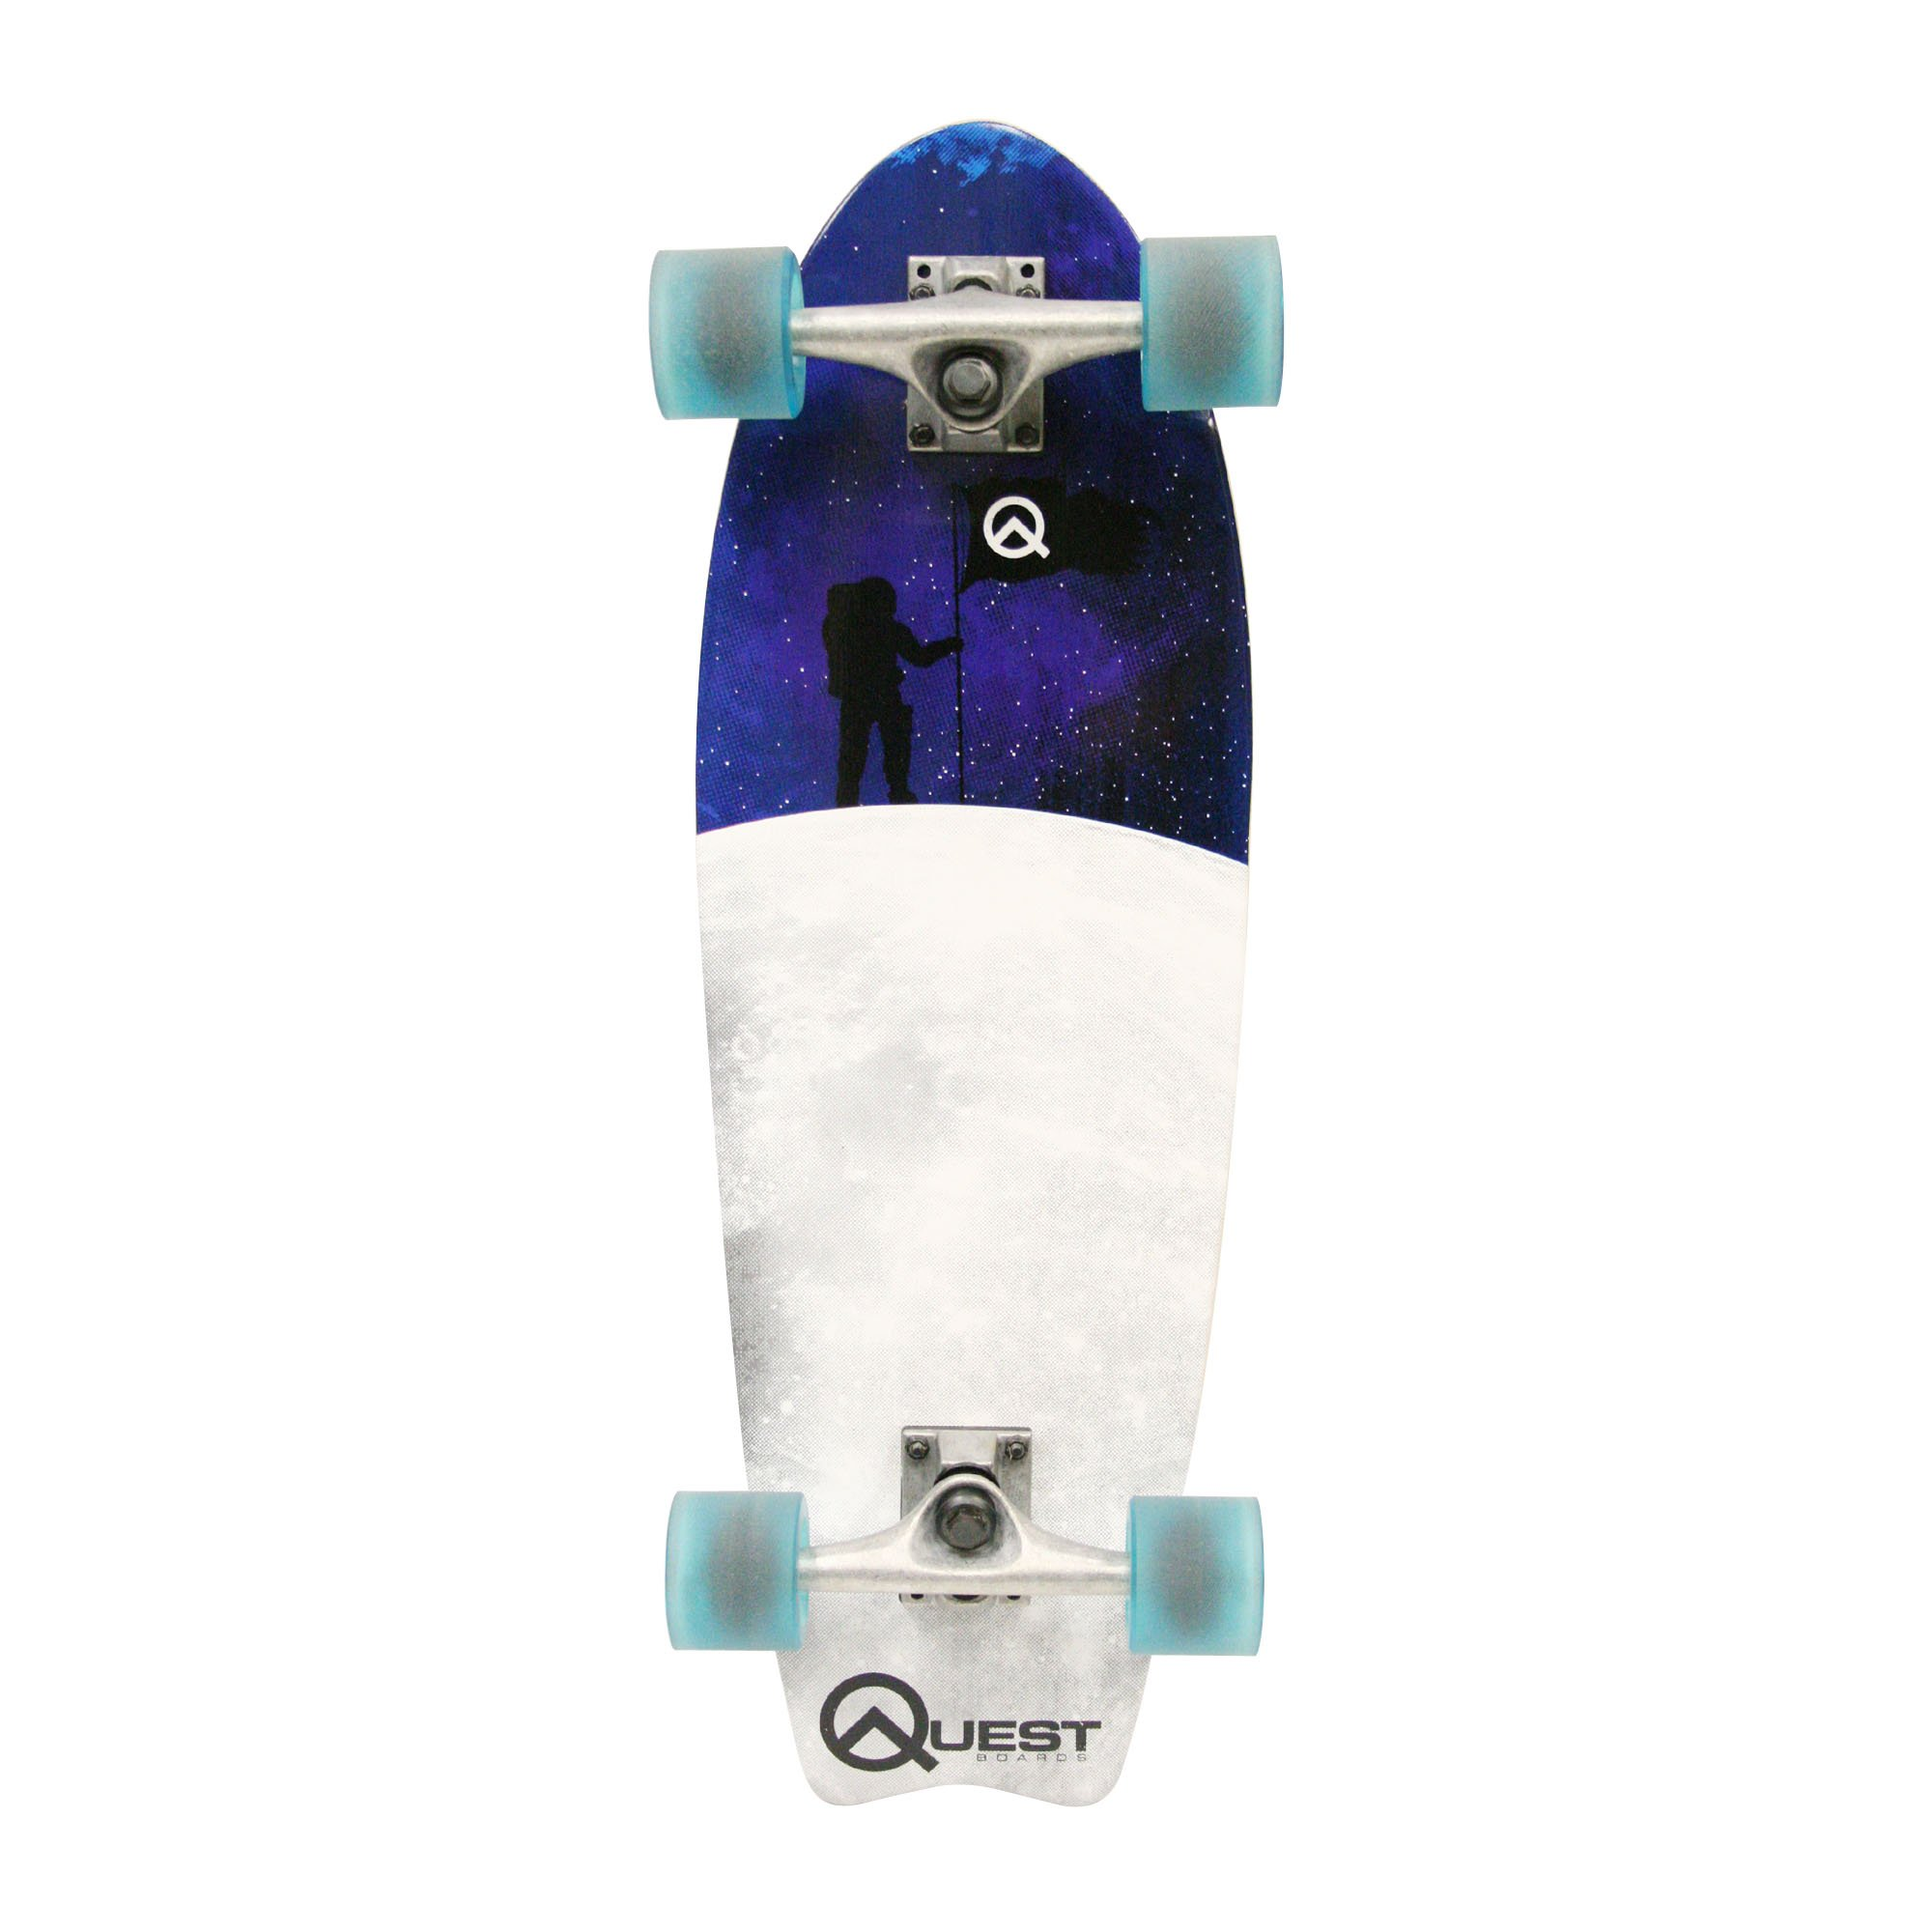 Quest Fishtail Cruiser Board Skateboard (27-Inch)